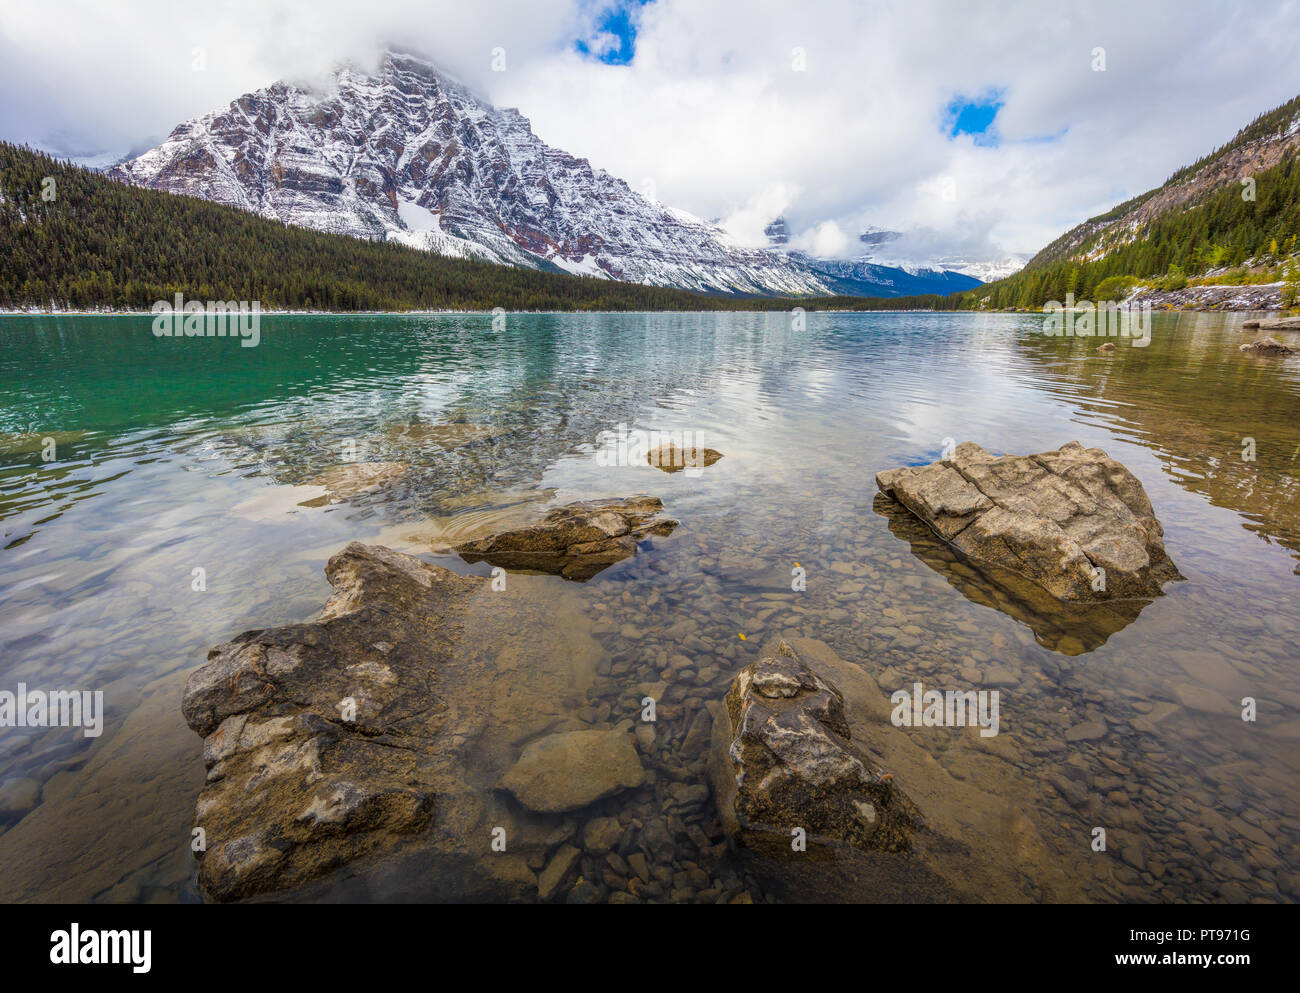 Waterfowl Lake along Icefields Parkway. Highway 93 is a north-south highway in Alberta, Canada. It is also known as the Banff-Windermere Parkway south - Stock Image